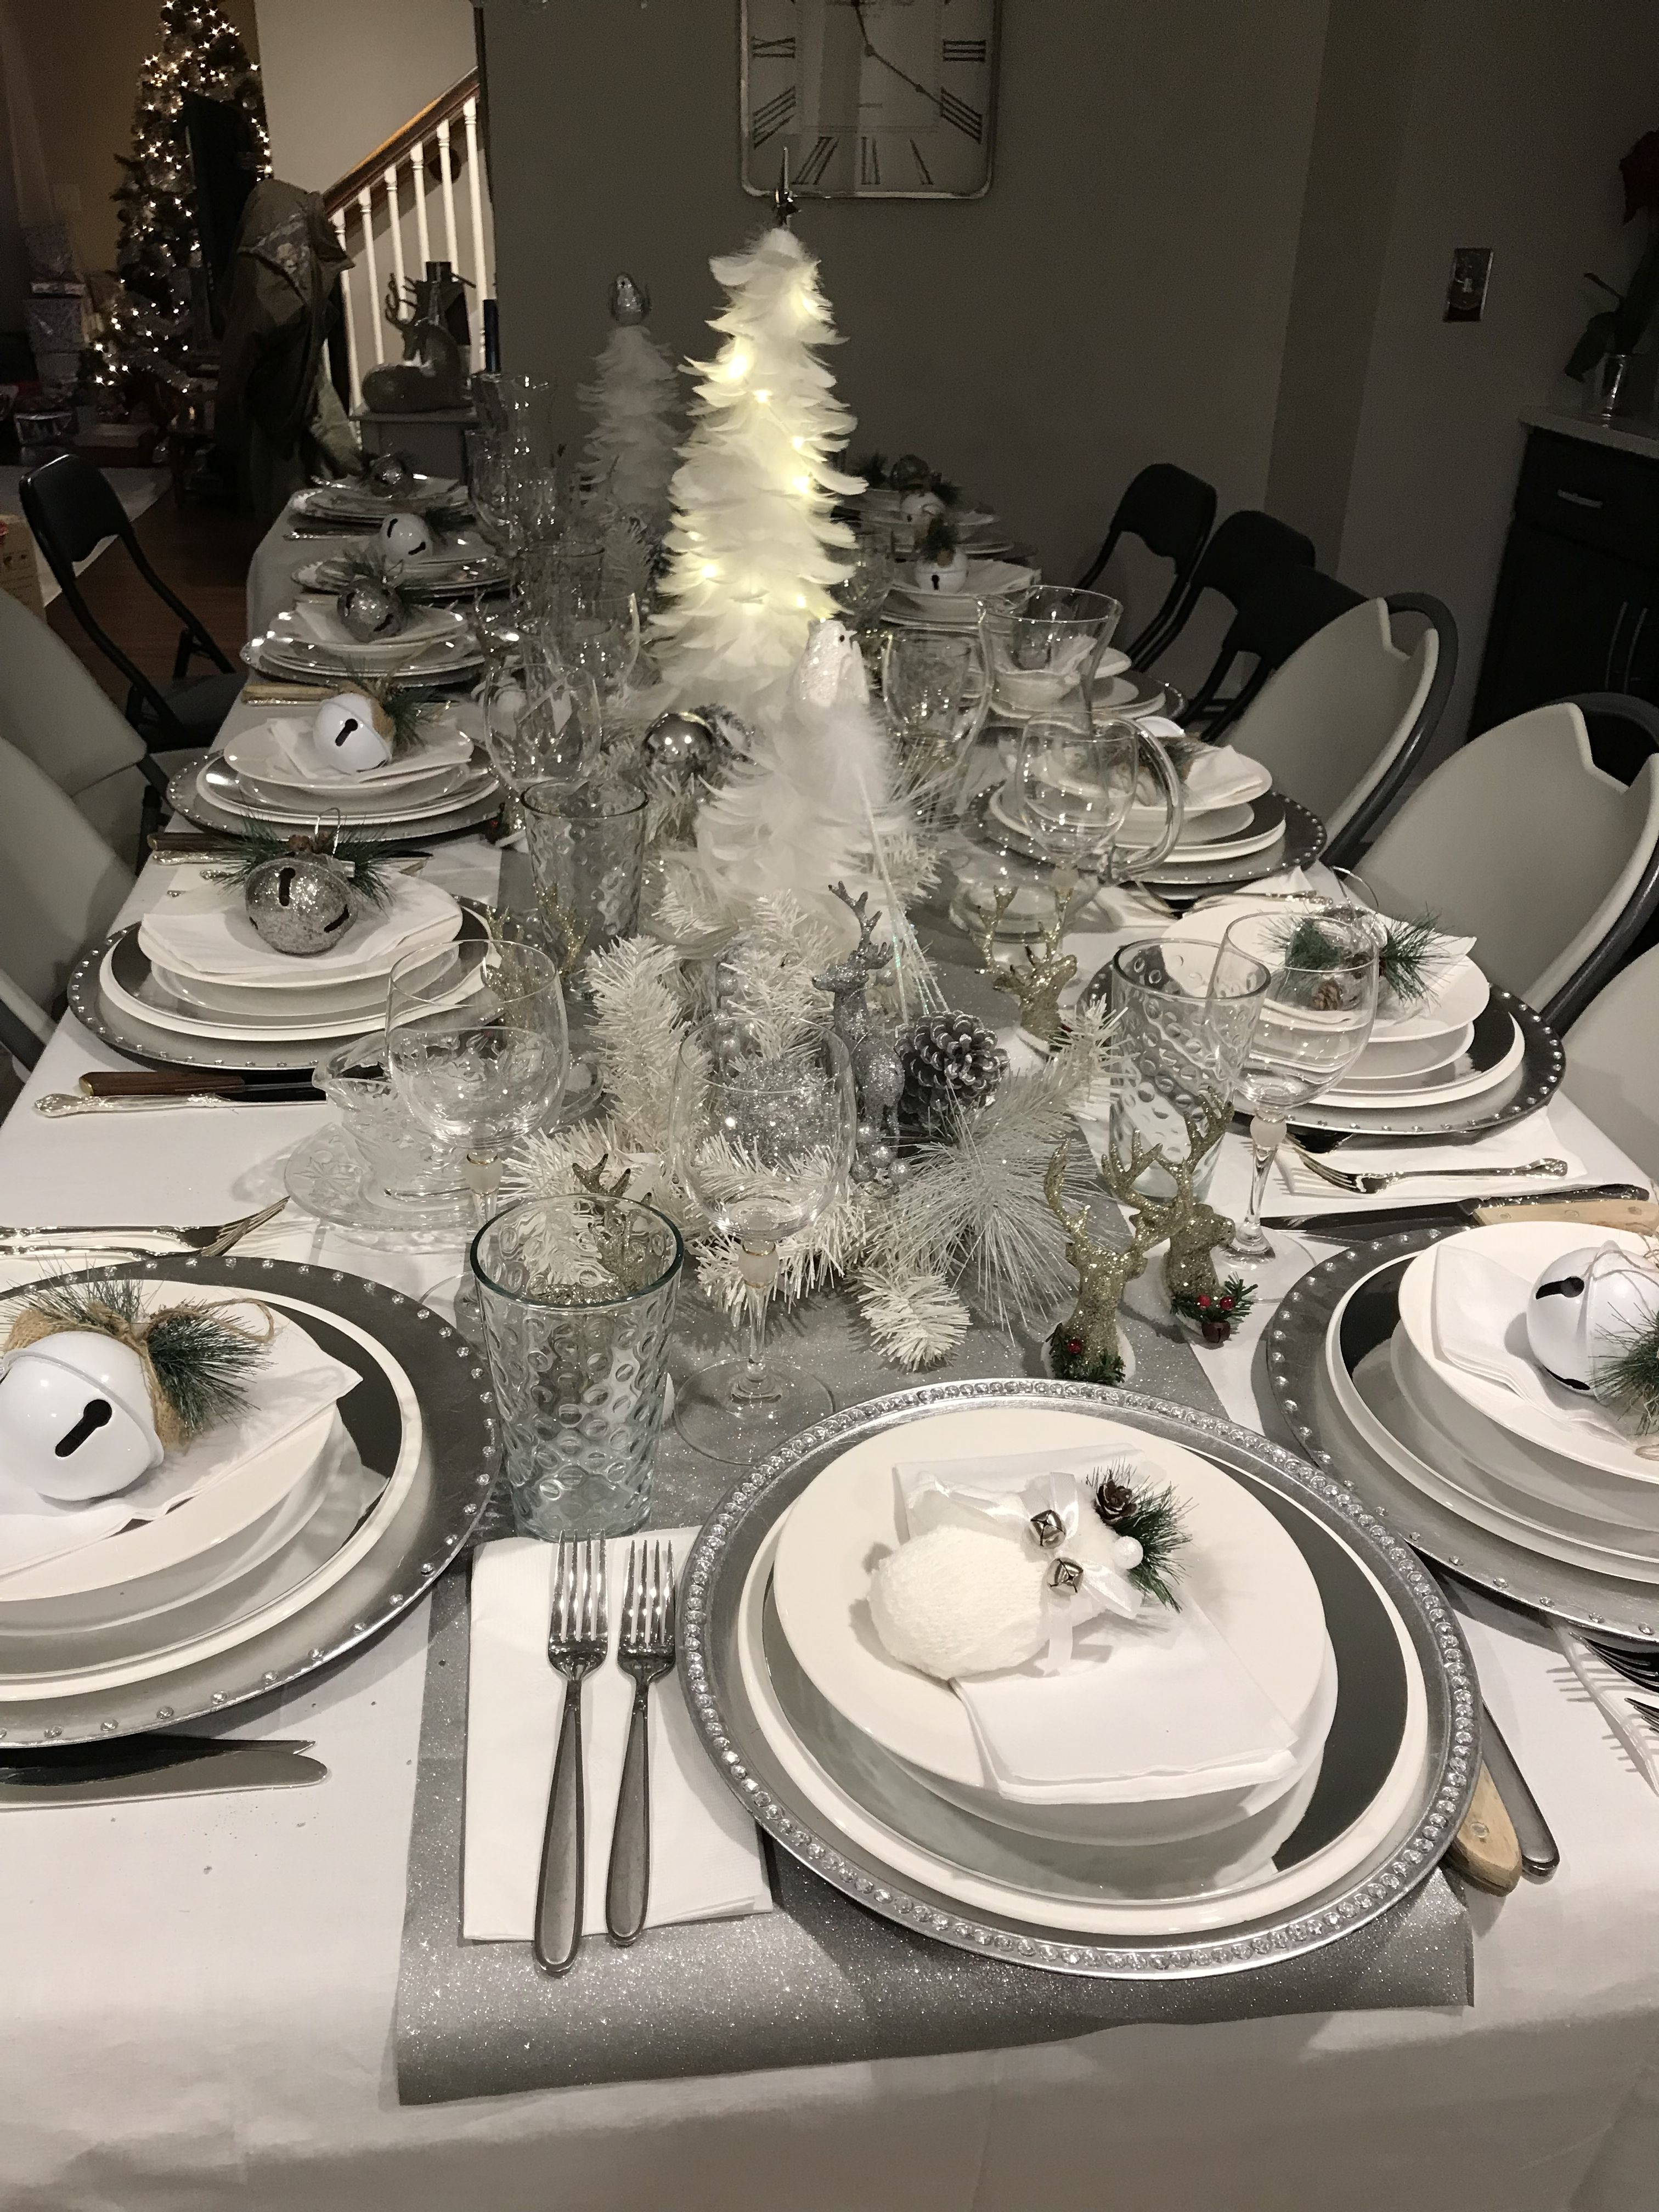 Silver And White Christmas Table Decorations Christmas Decorations Dinner Table Christmas Table Christmas Dinner Table